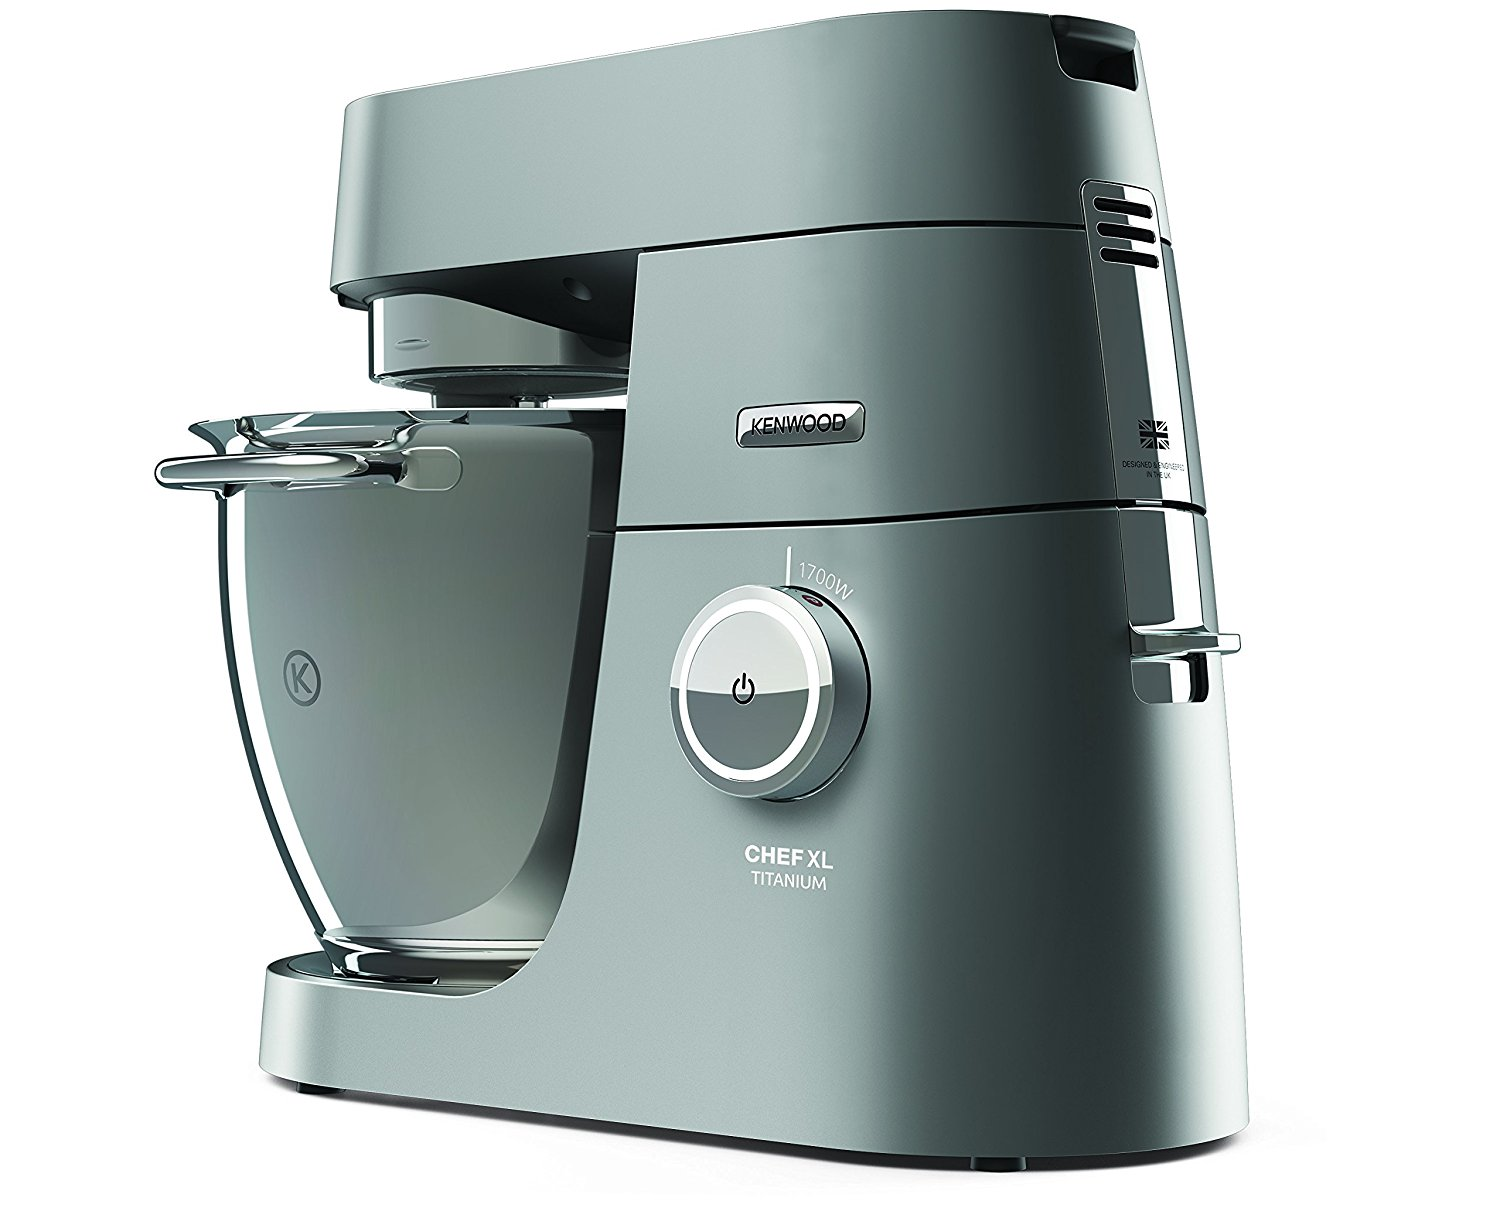 kenwood kvl8300s major titanium pro chef xl k chenmaschine. Black Bedroom Furniture Sets. Home Design Ideas